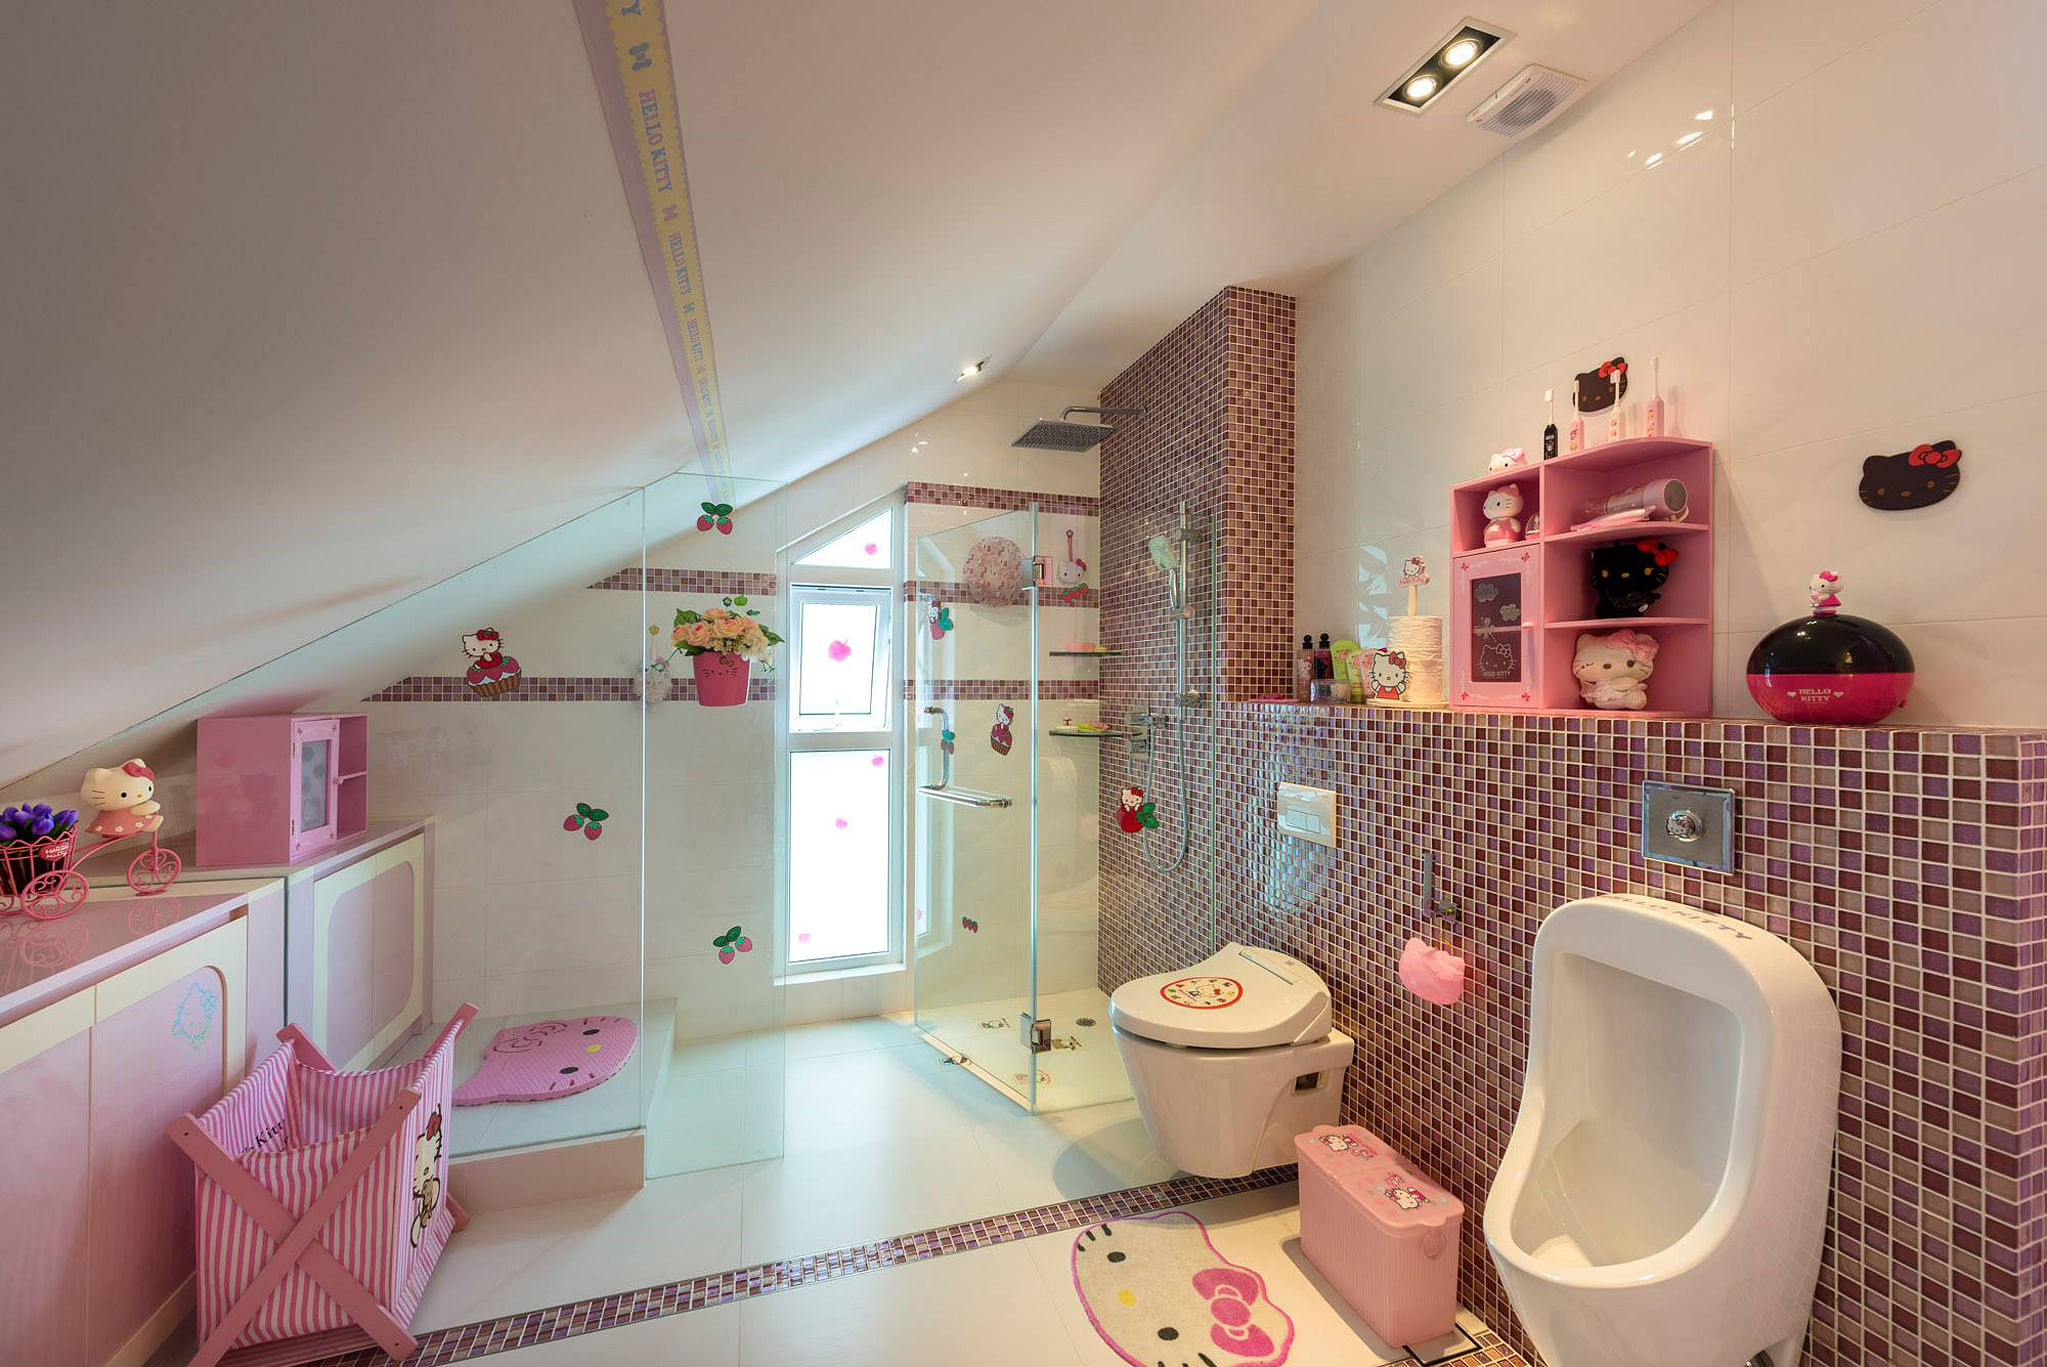 House Of Kitty Home Design News Top Stories The Straits Times